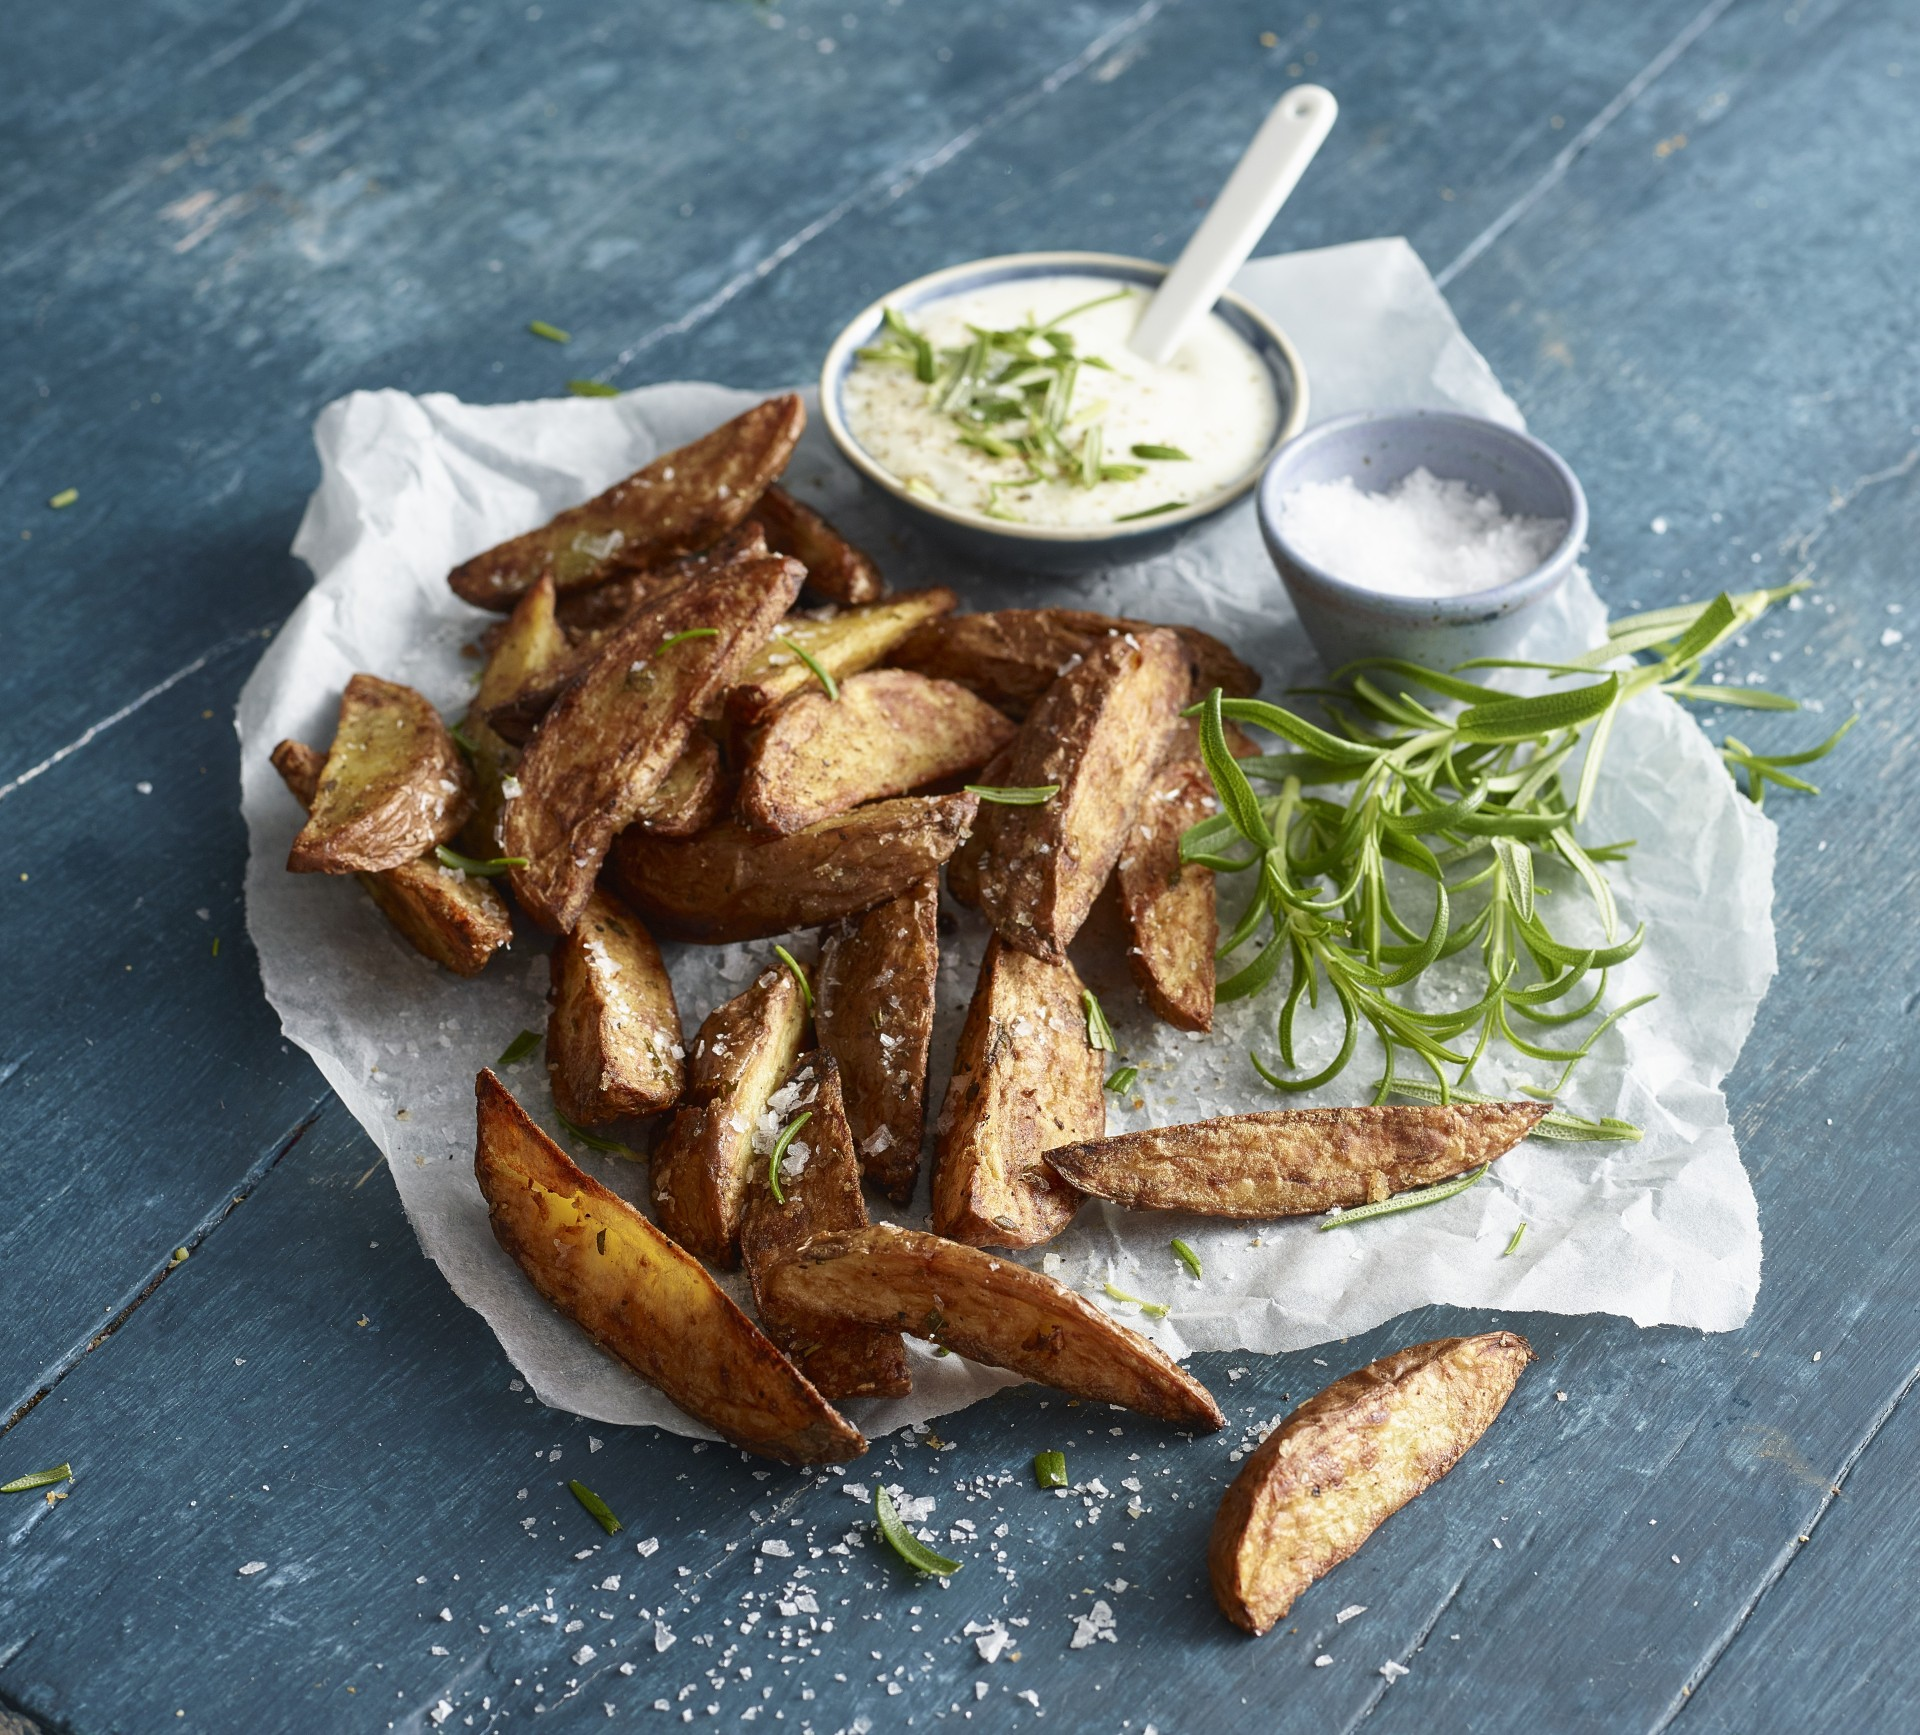 potato wedges with side